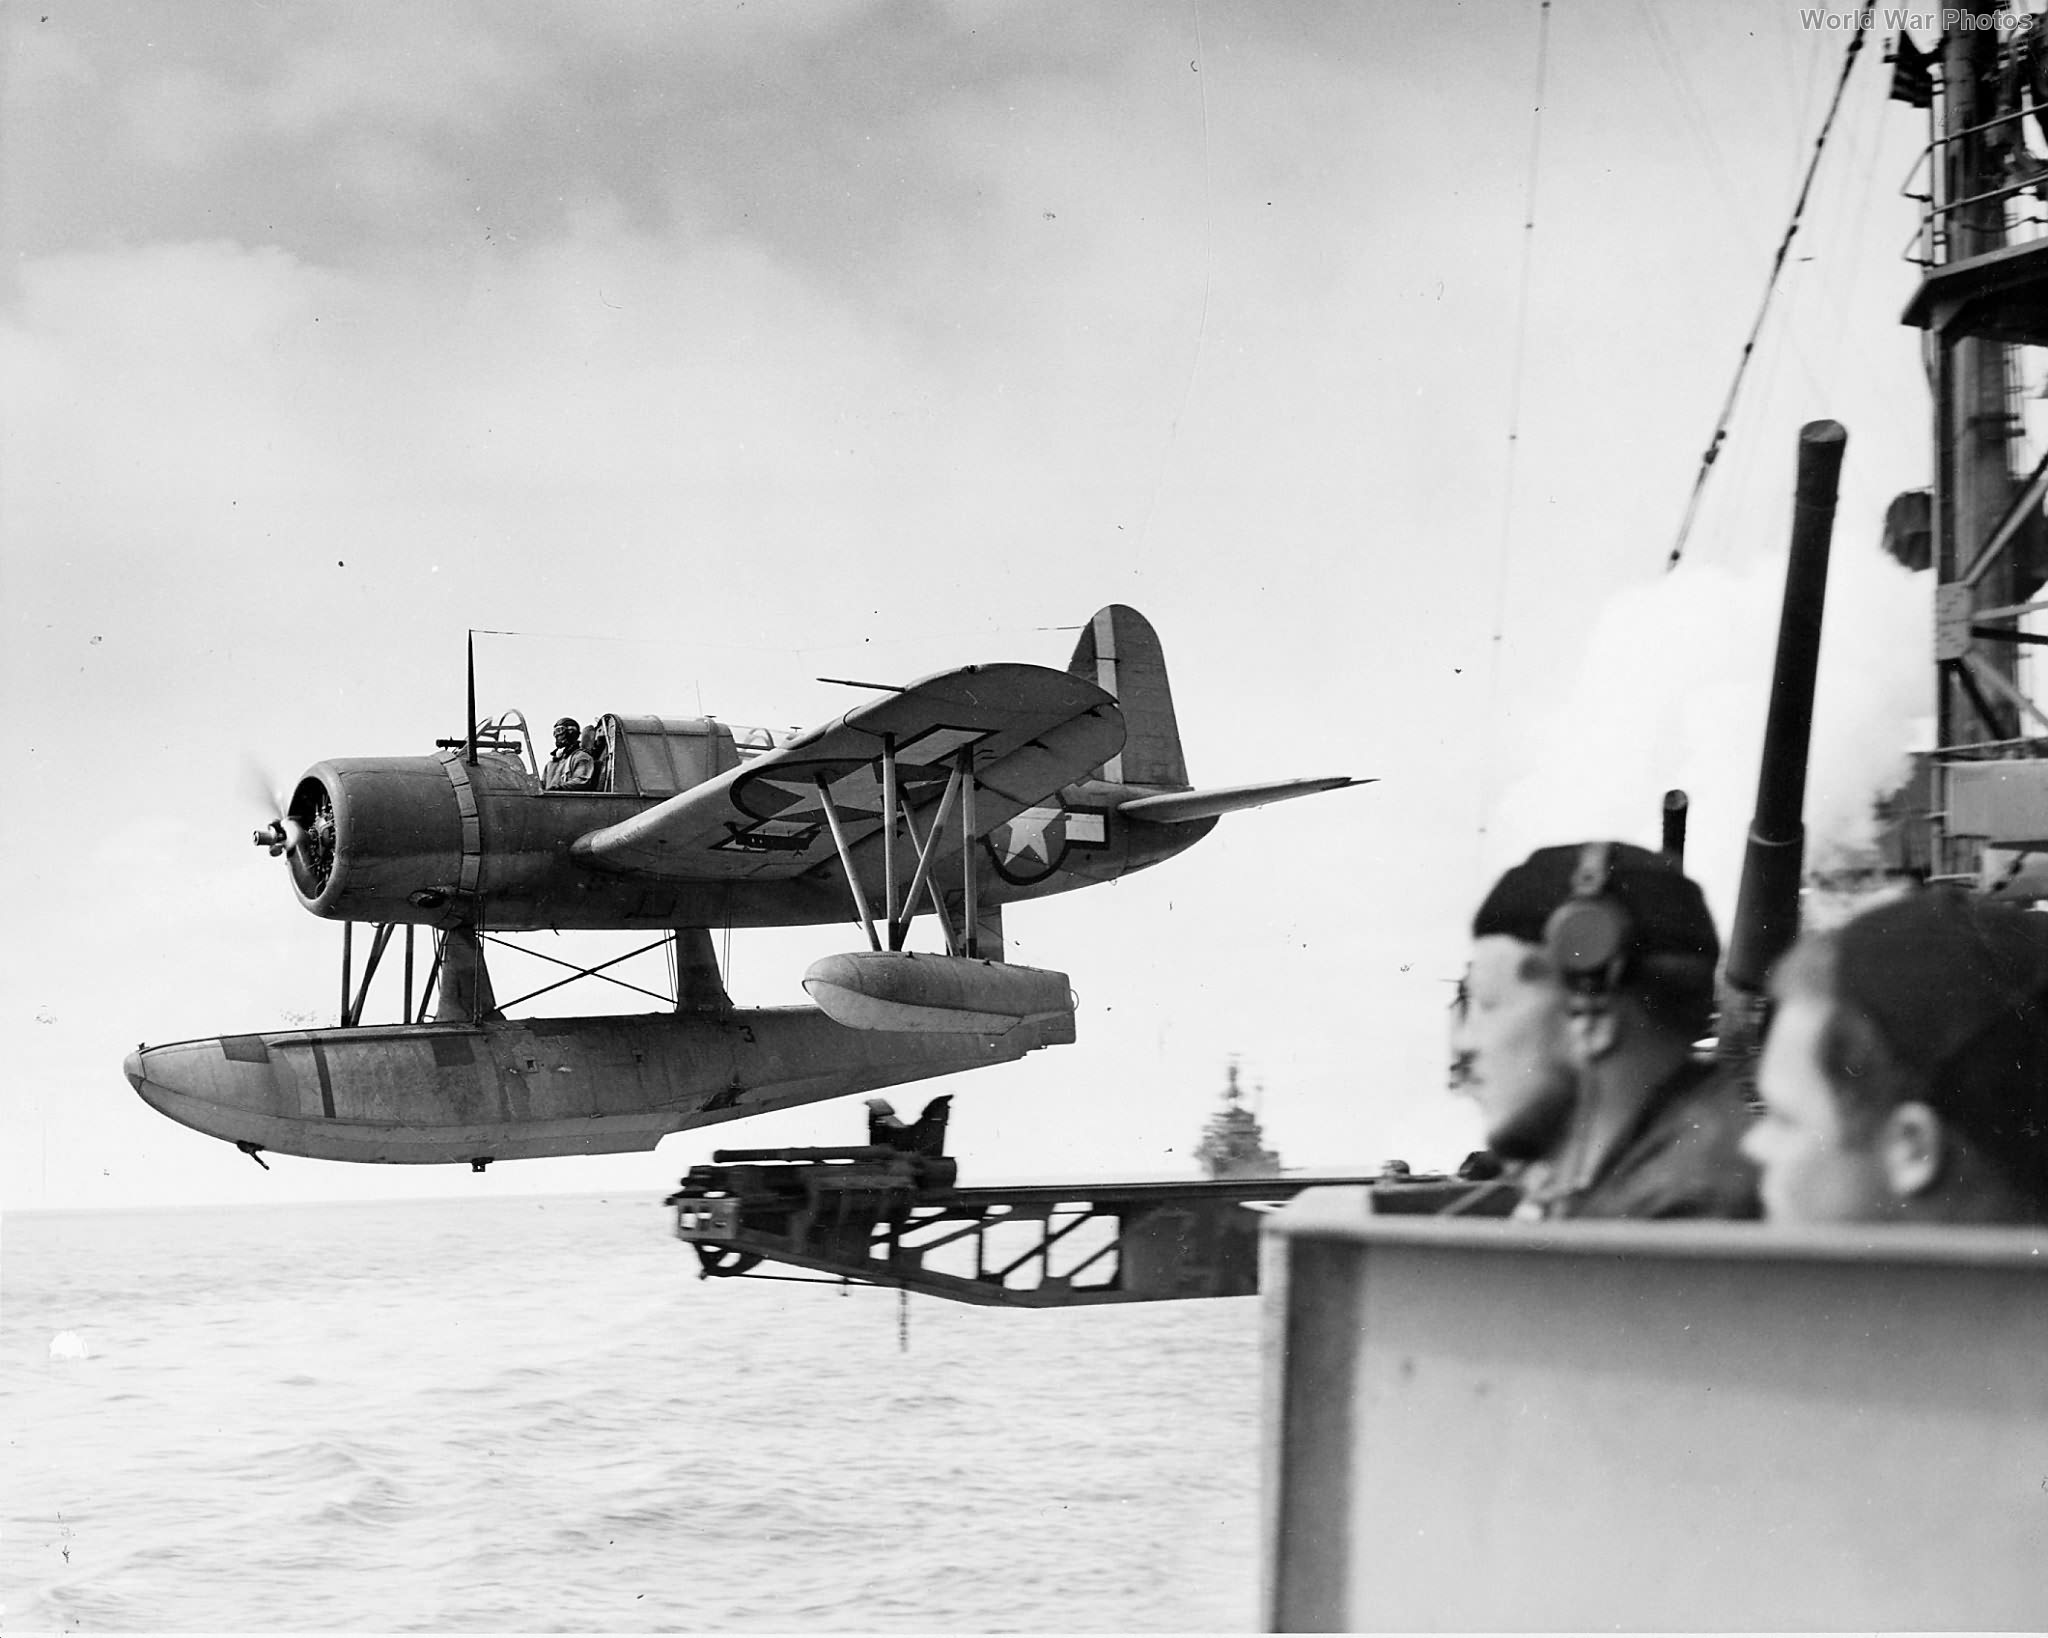 Kingfisher piloted by Lt Fred Hunter of VCS-1, Aleutians